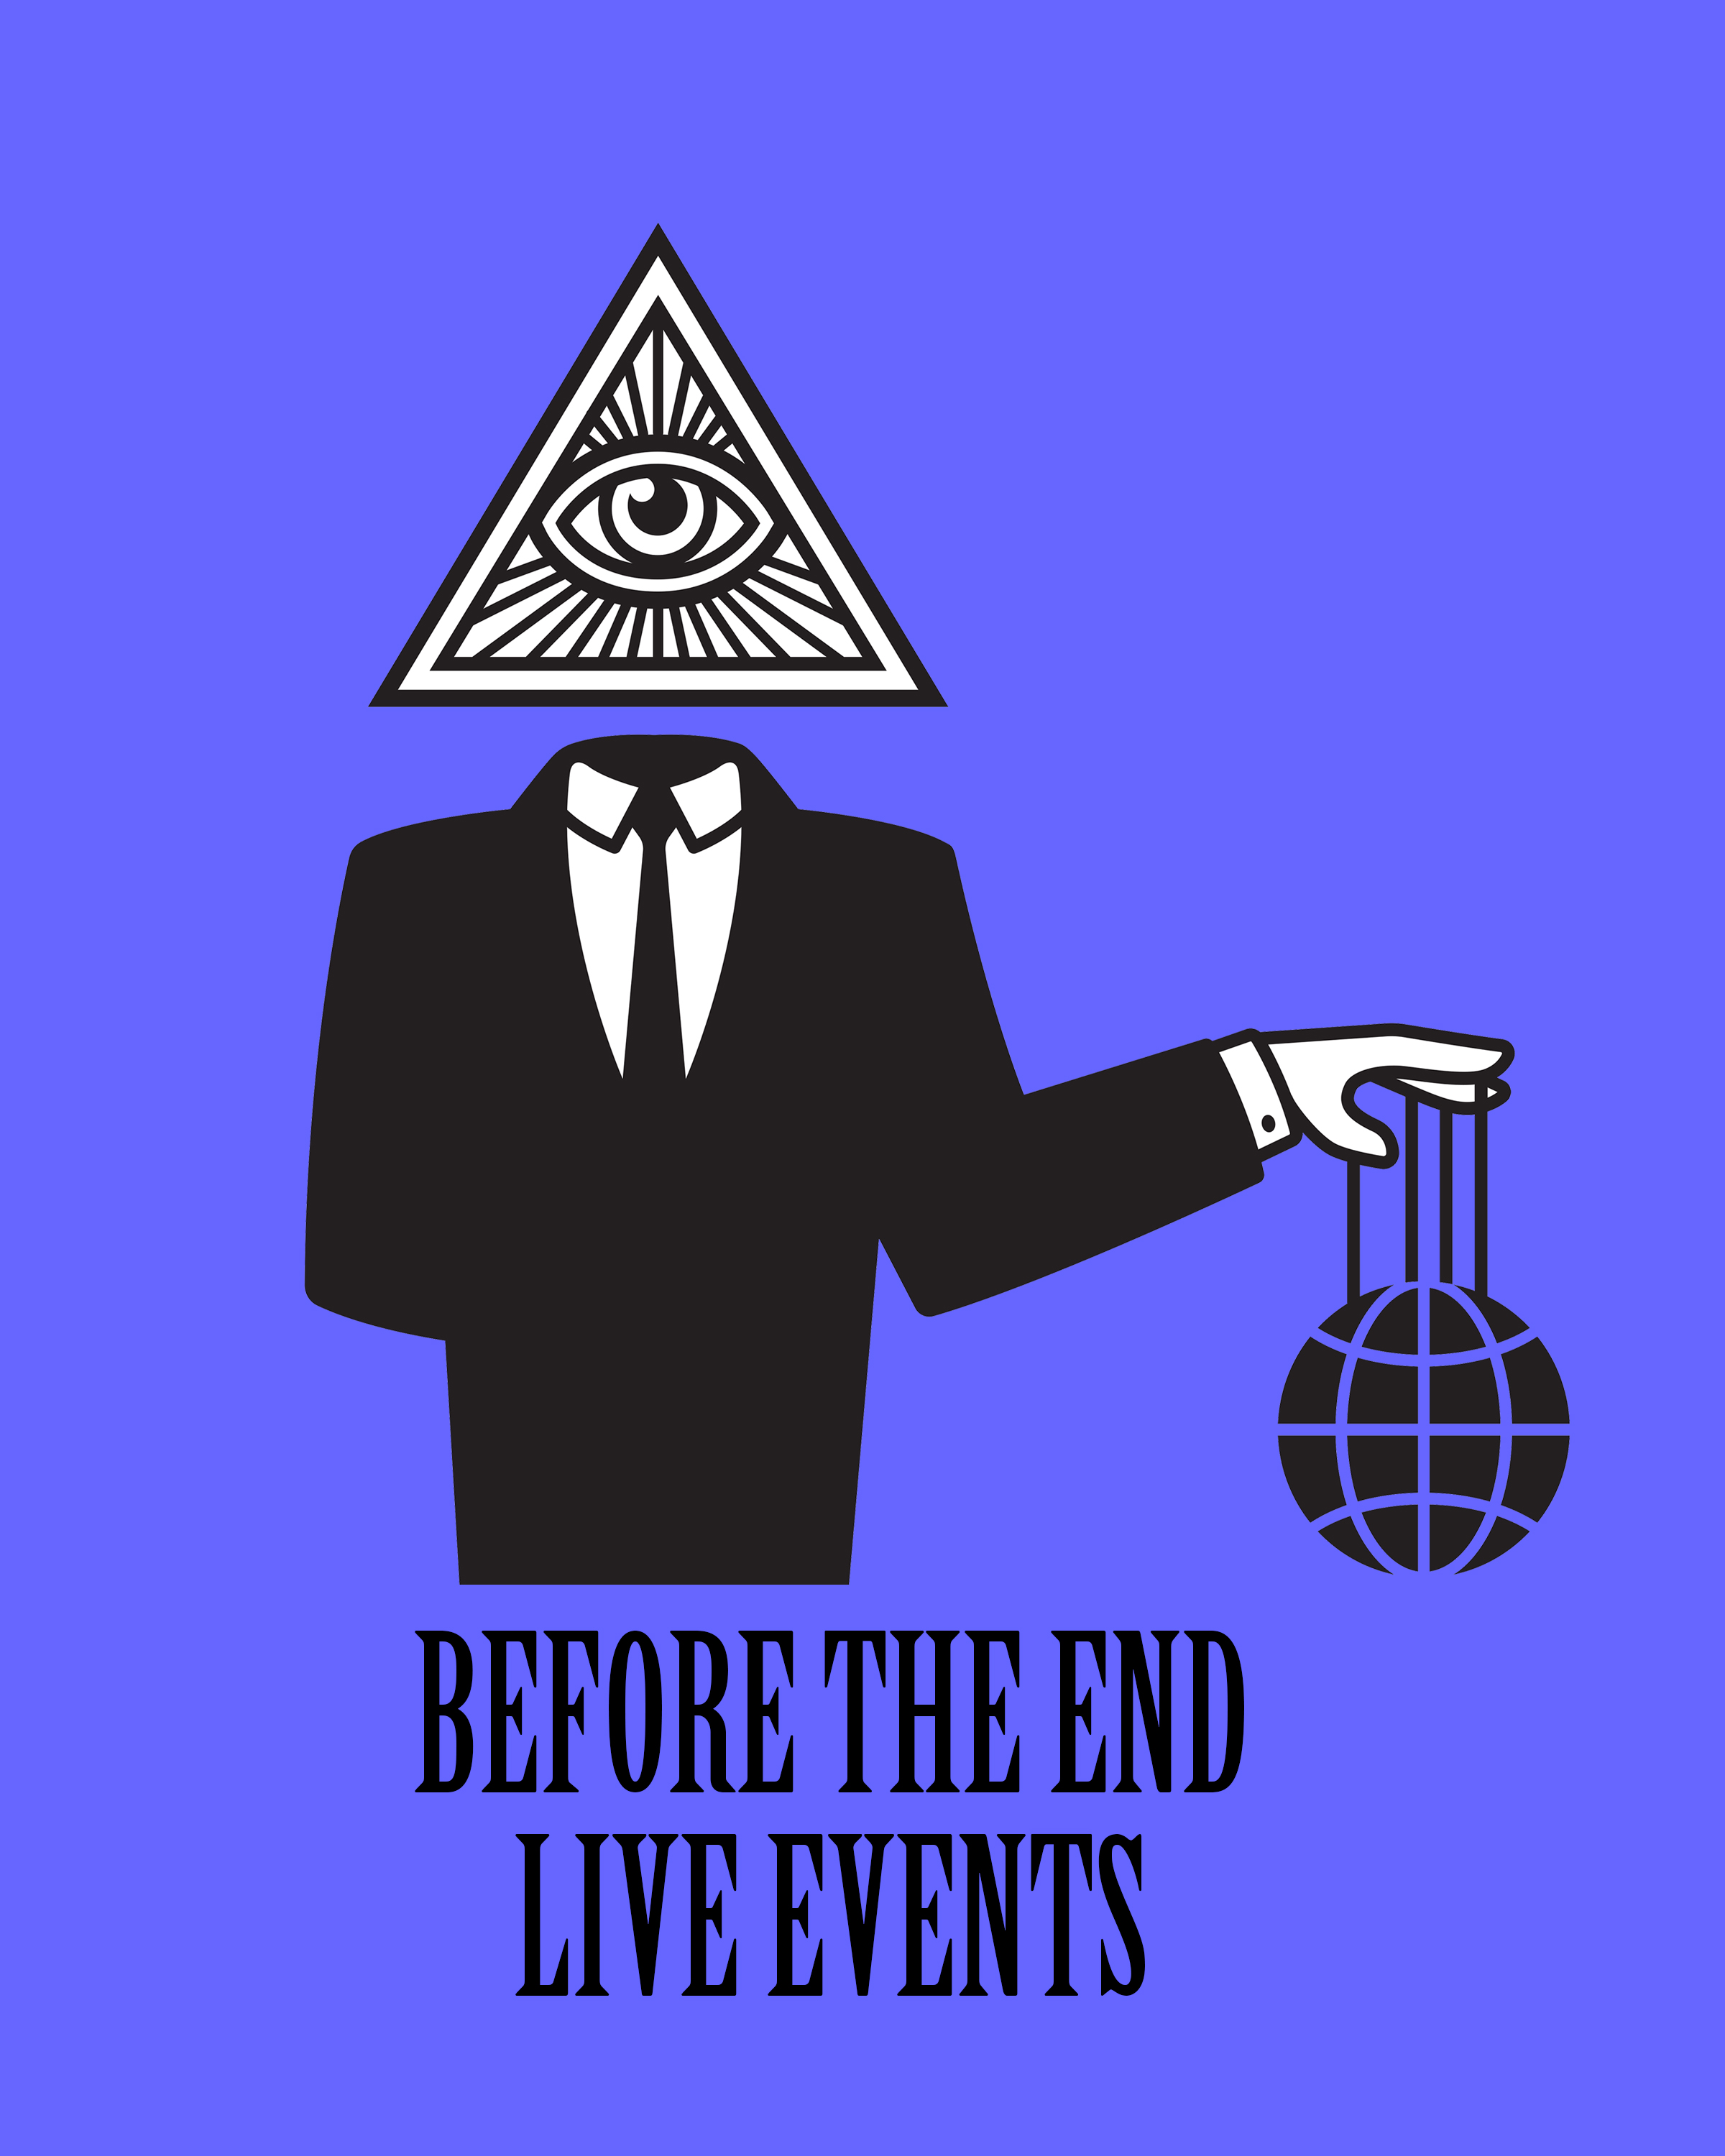 Before The End Live Events.jpg